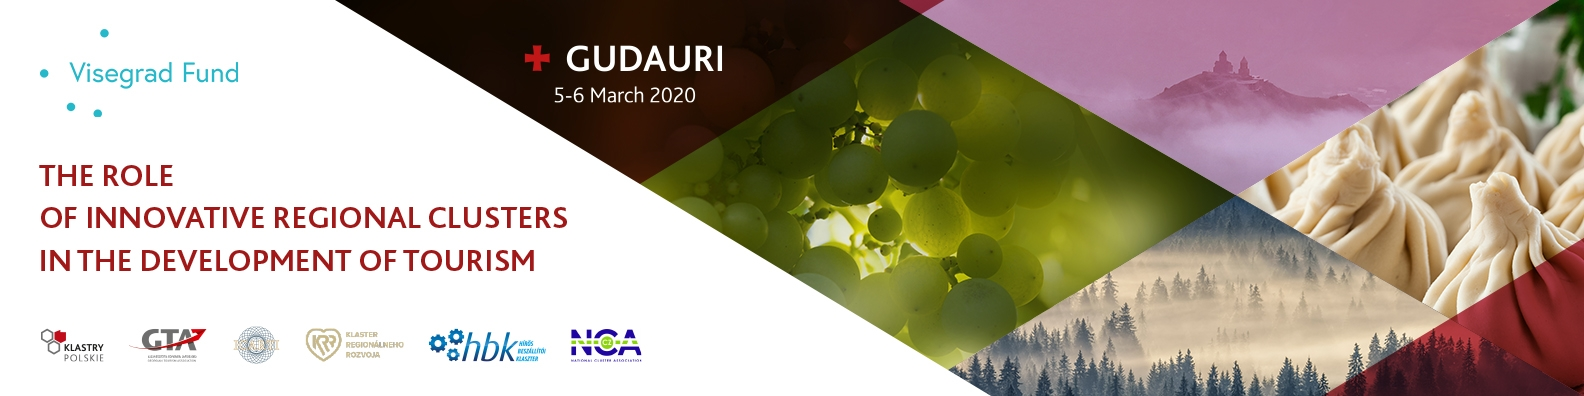 The role of innovative regional clusters in the development of tourism | Gudauri (Georgia) 5-6 March 2020